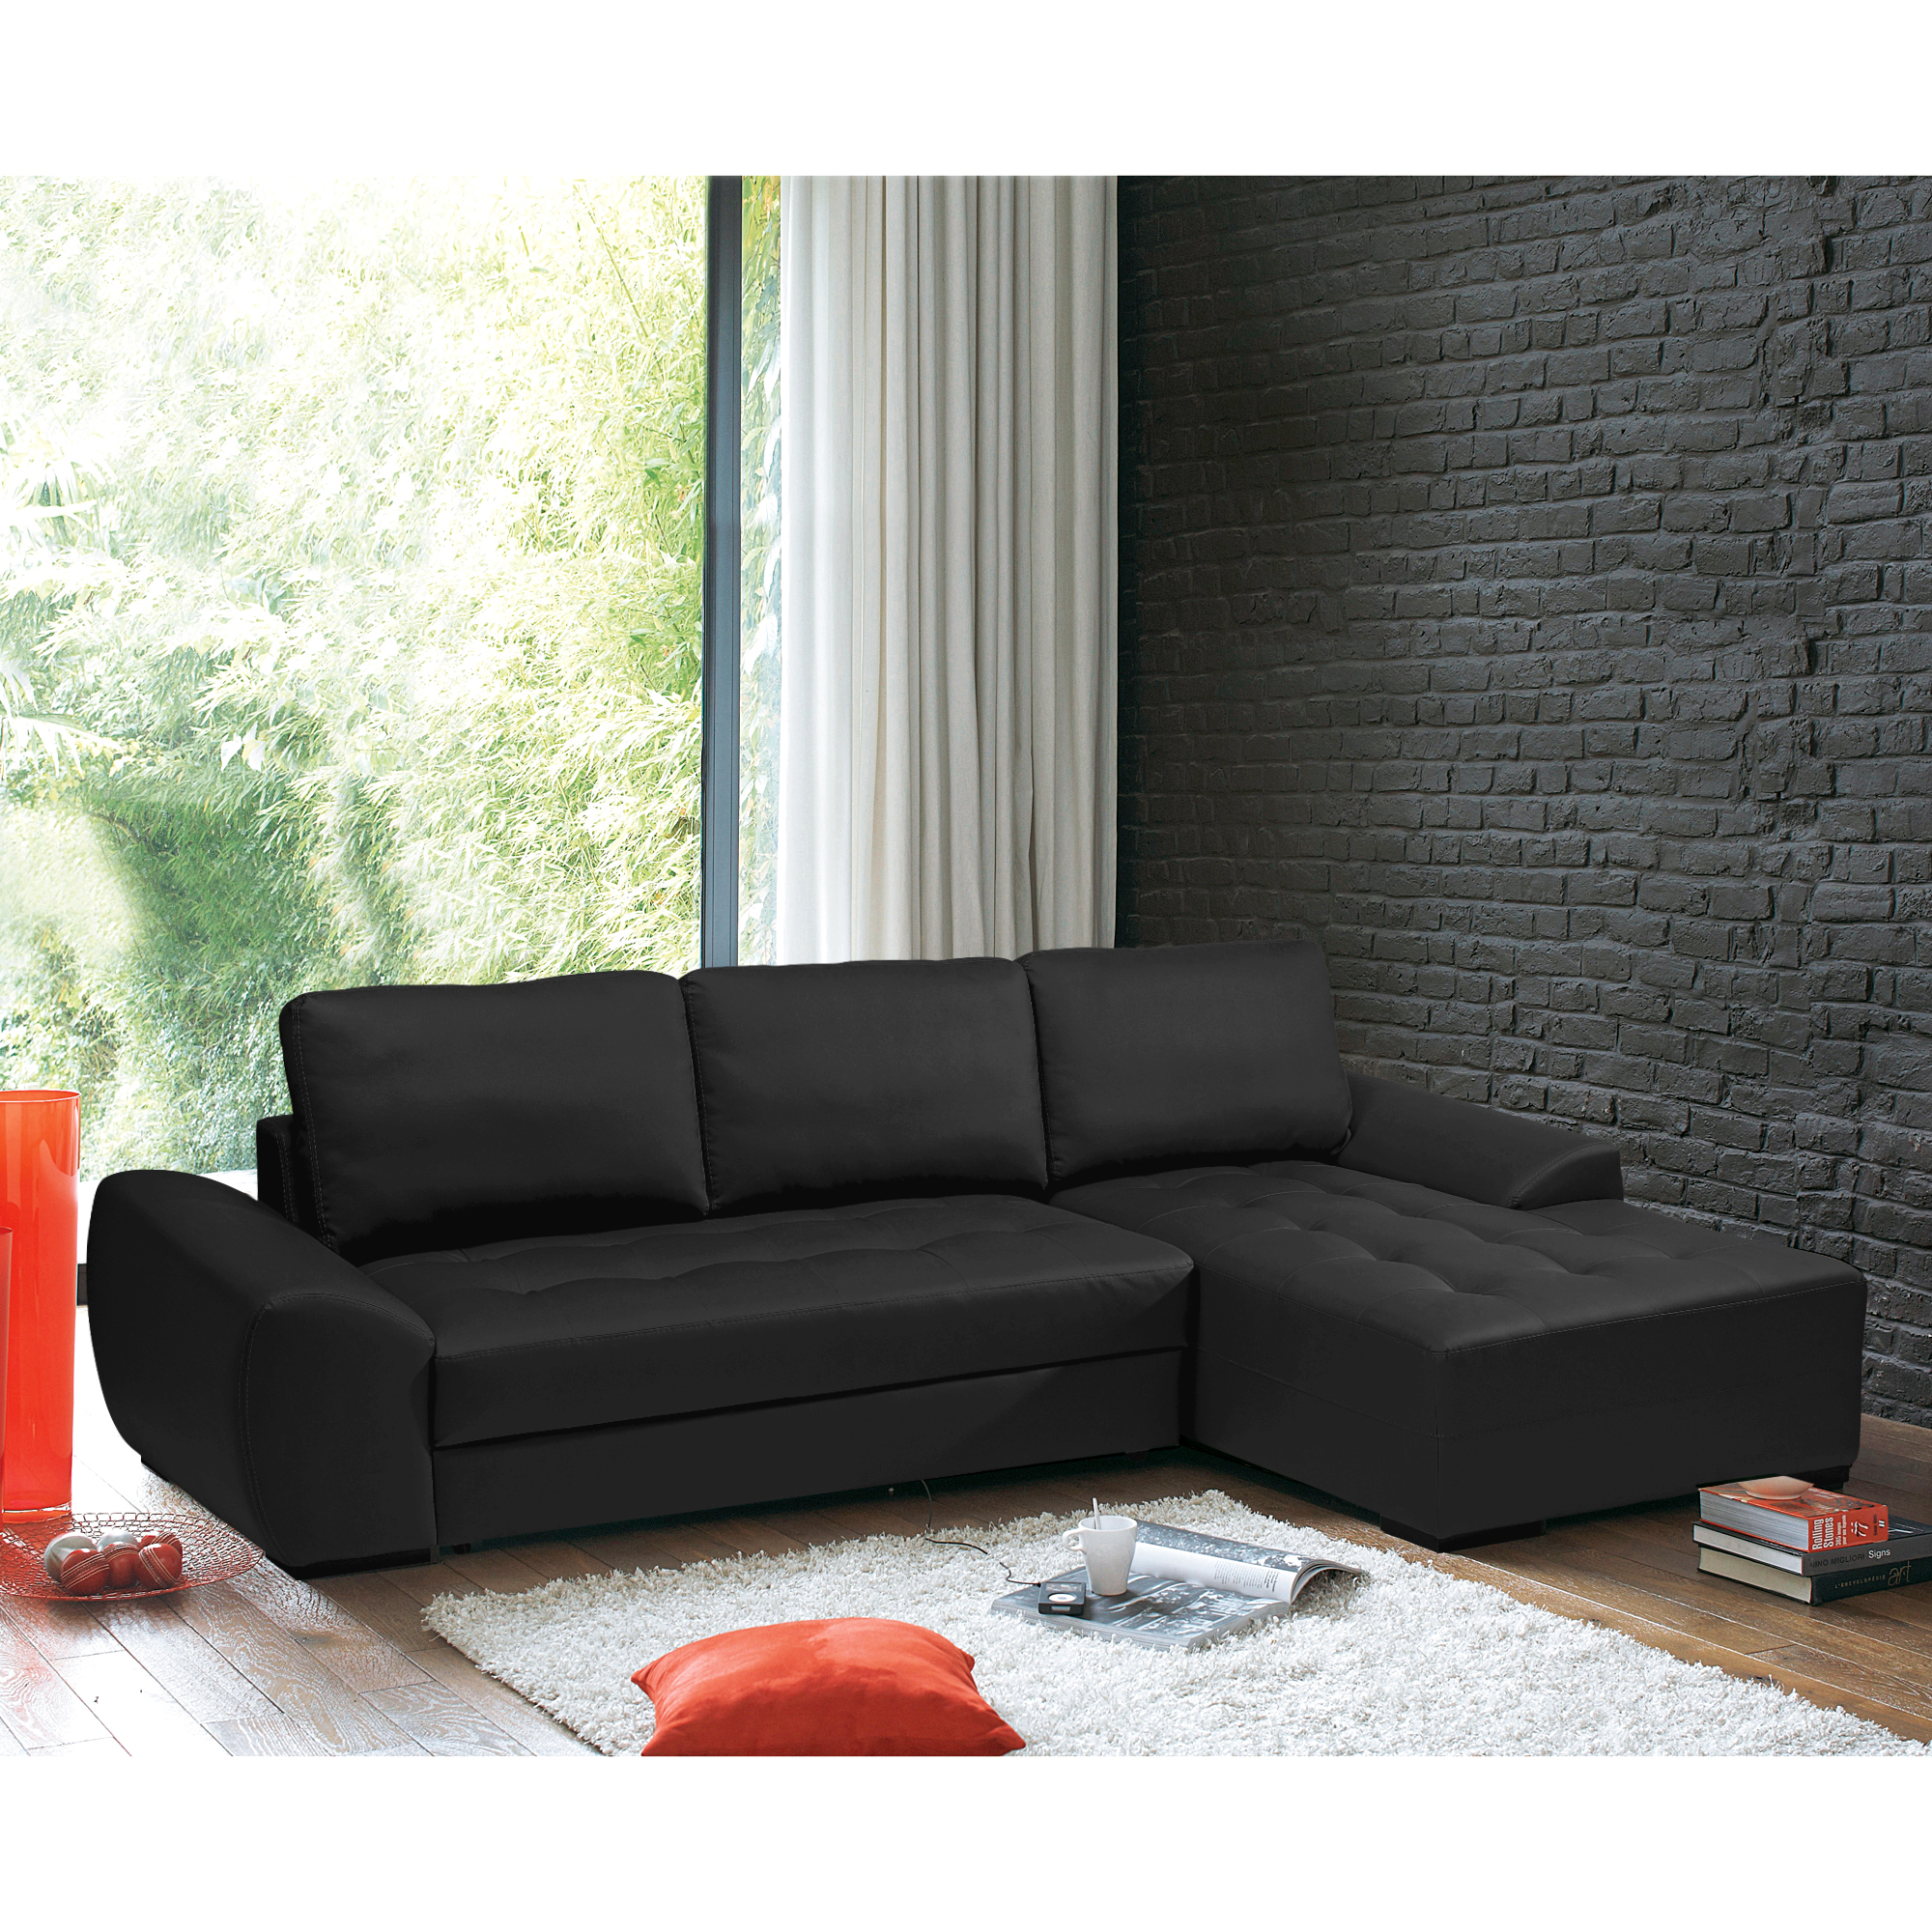 Canape Romy Conforama Luxe Collection solde Canapé D Angle solde Canap D 39 Angle Conforama Canap D 39